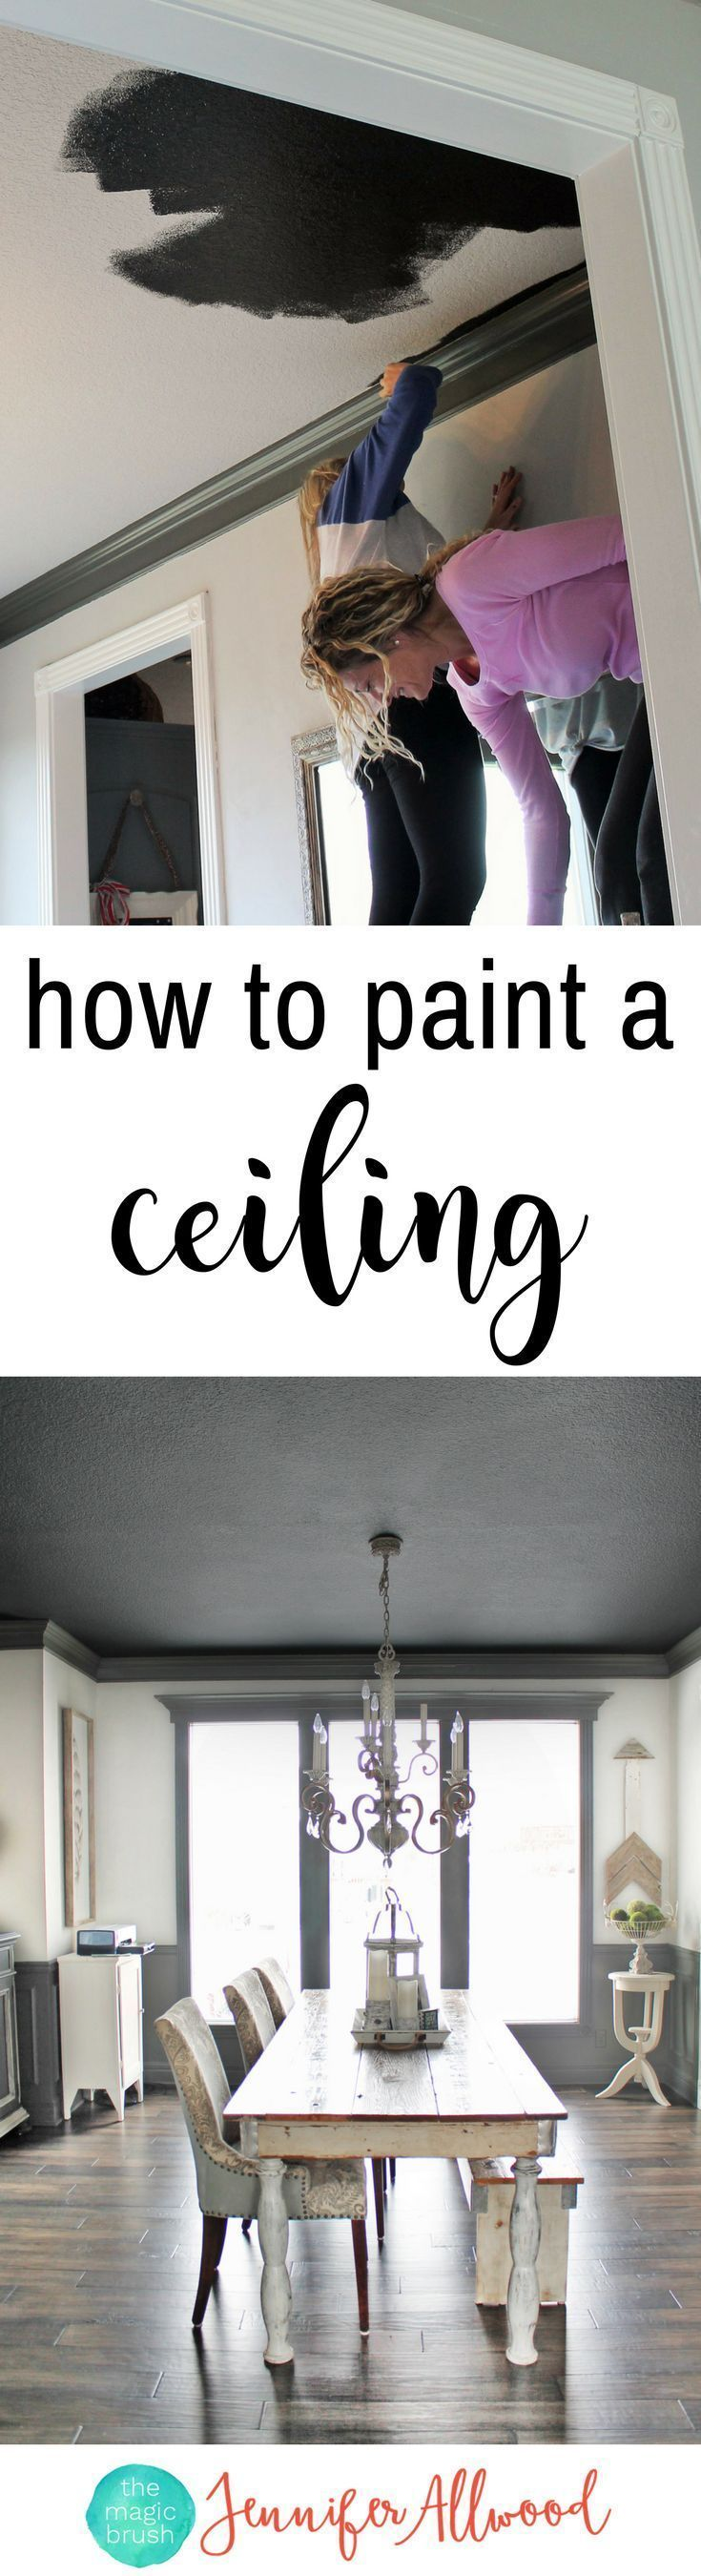 Info's : How to paint a ceiling ... black! Painted Black Ceiling in the Dining Room | Ceiling Painting Tips | Magic Brush | Painted Ceiling Ideas | Tricorn Black Sherwin Williams #painted #painting #paintingideas #homedecor #homdecorideas #paintedfurniture #ceiling #DIY #DIYhomedecor #howto